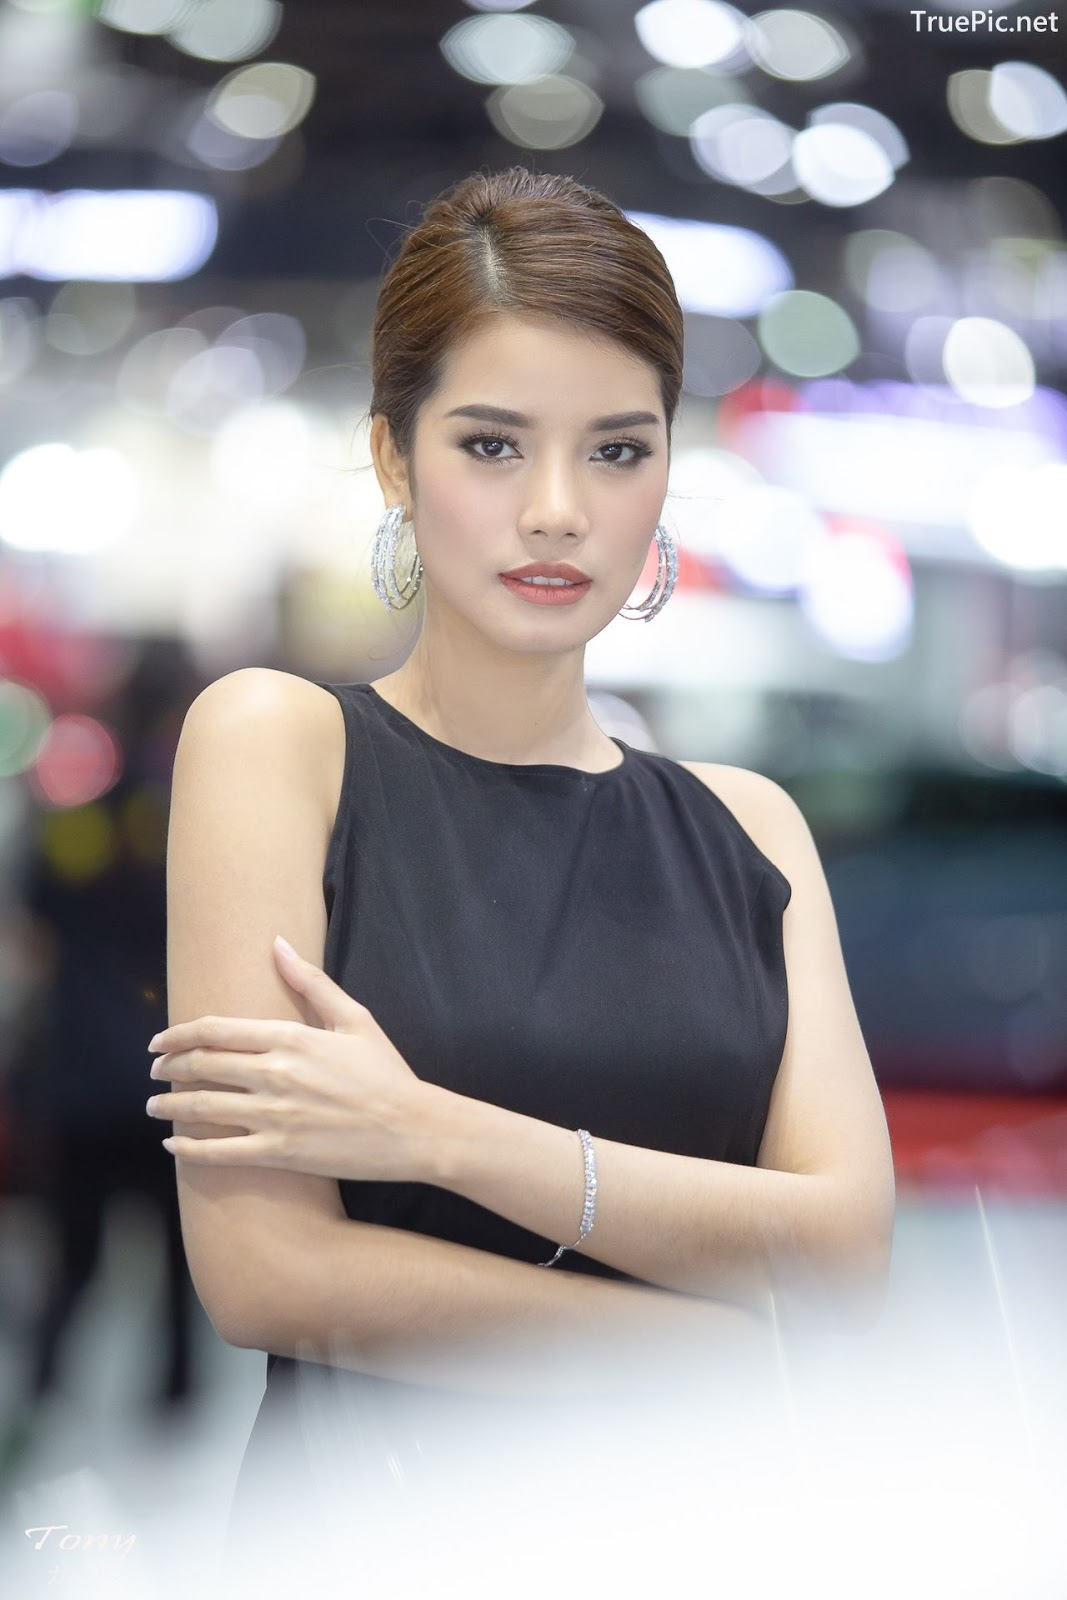 Image-Thailand-Hot-Model-Thai-Racing-Girl-At-Motor-Expo-2019-TruePic.net- Picture-5